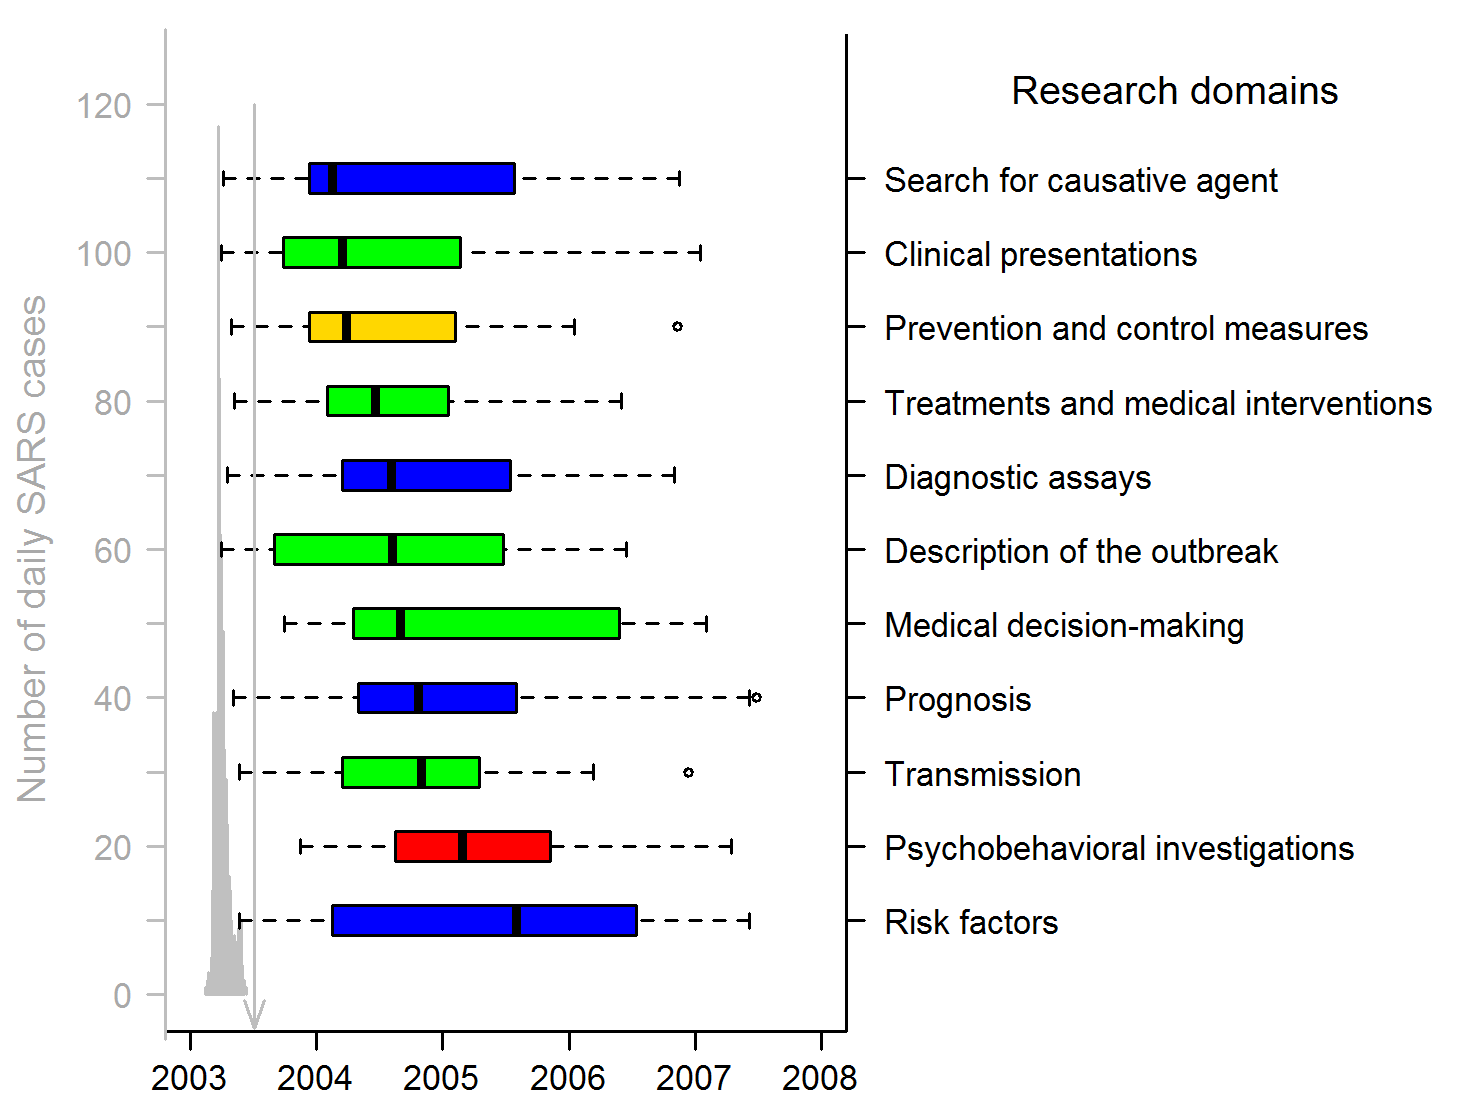 Publication dates of SARS papers in the 11 research domains (311 articles).